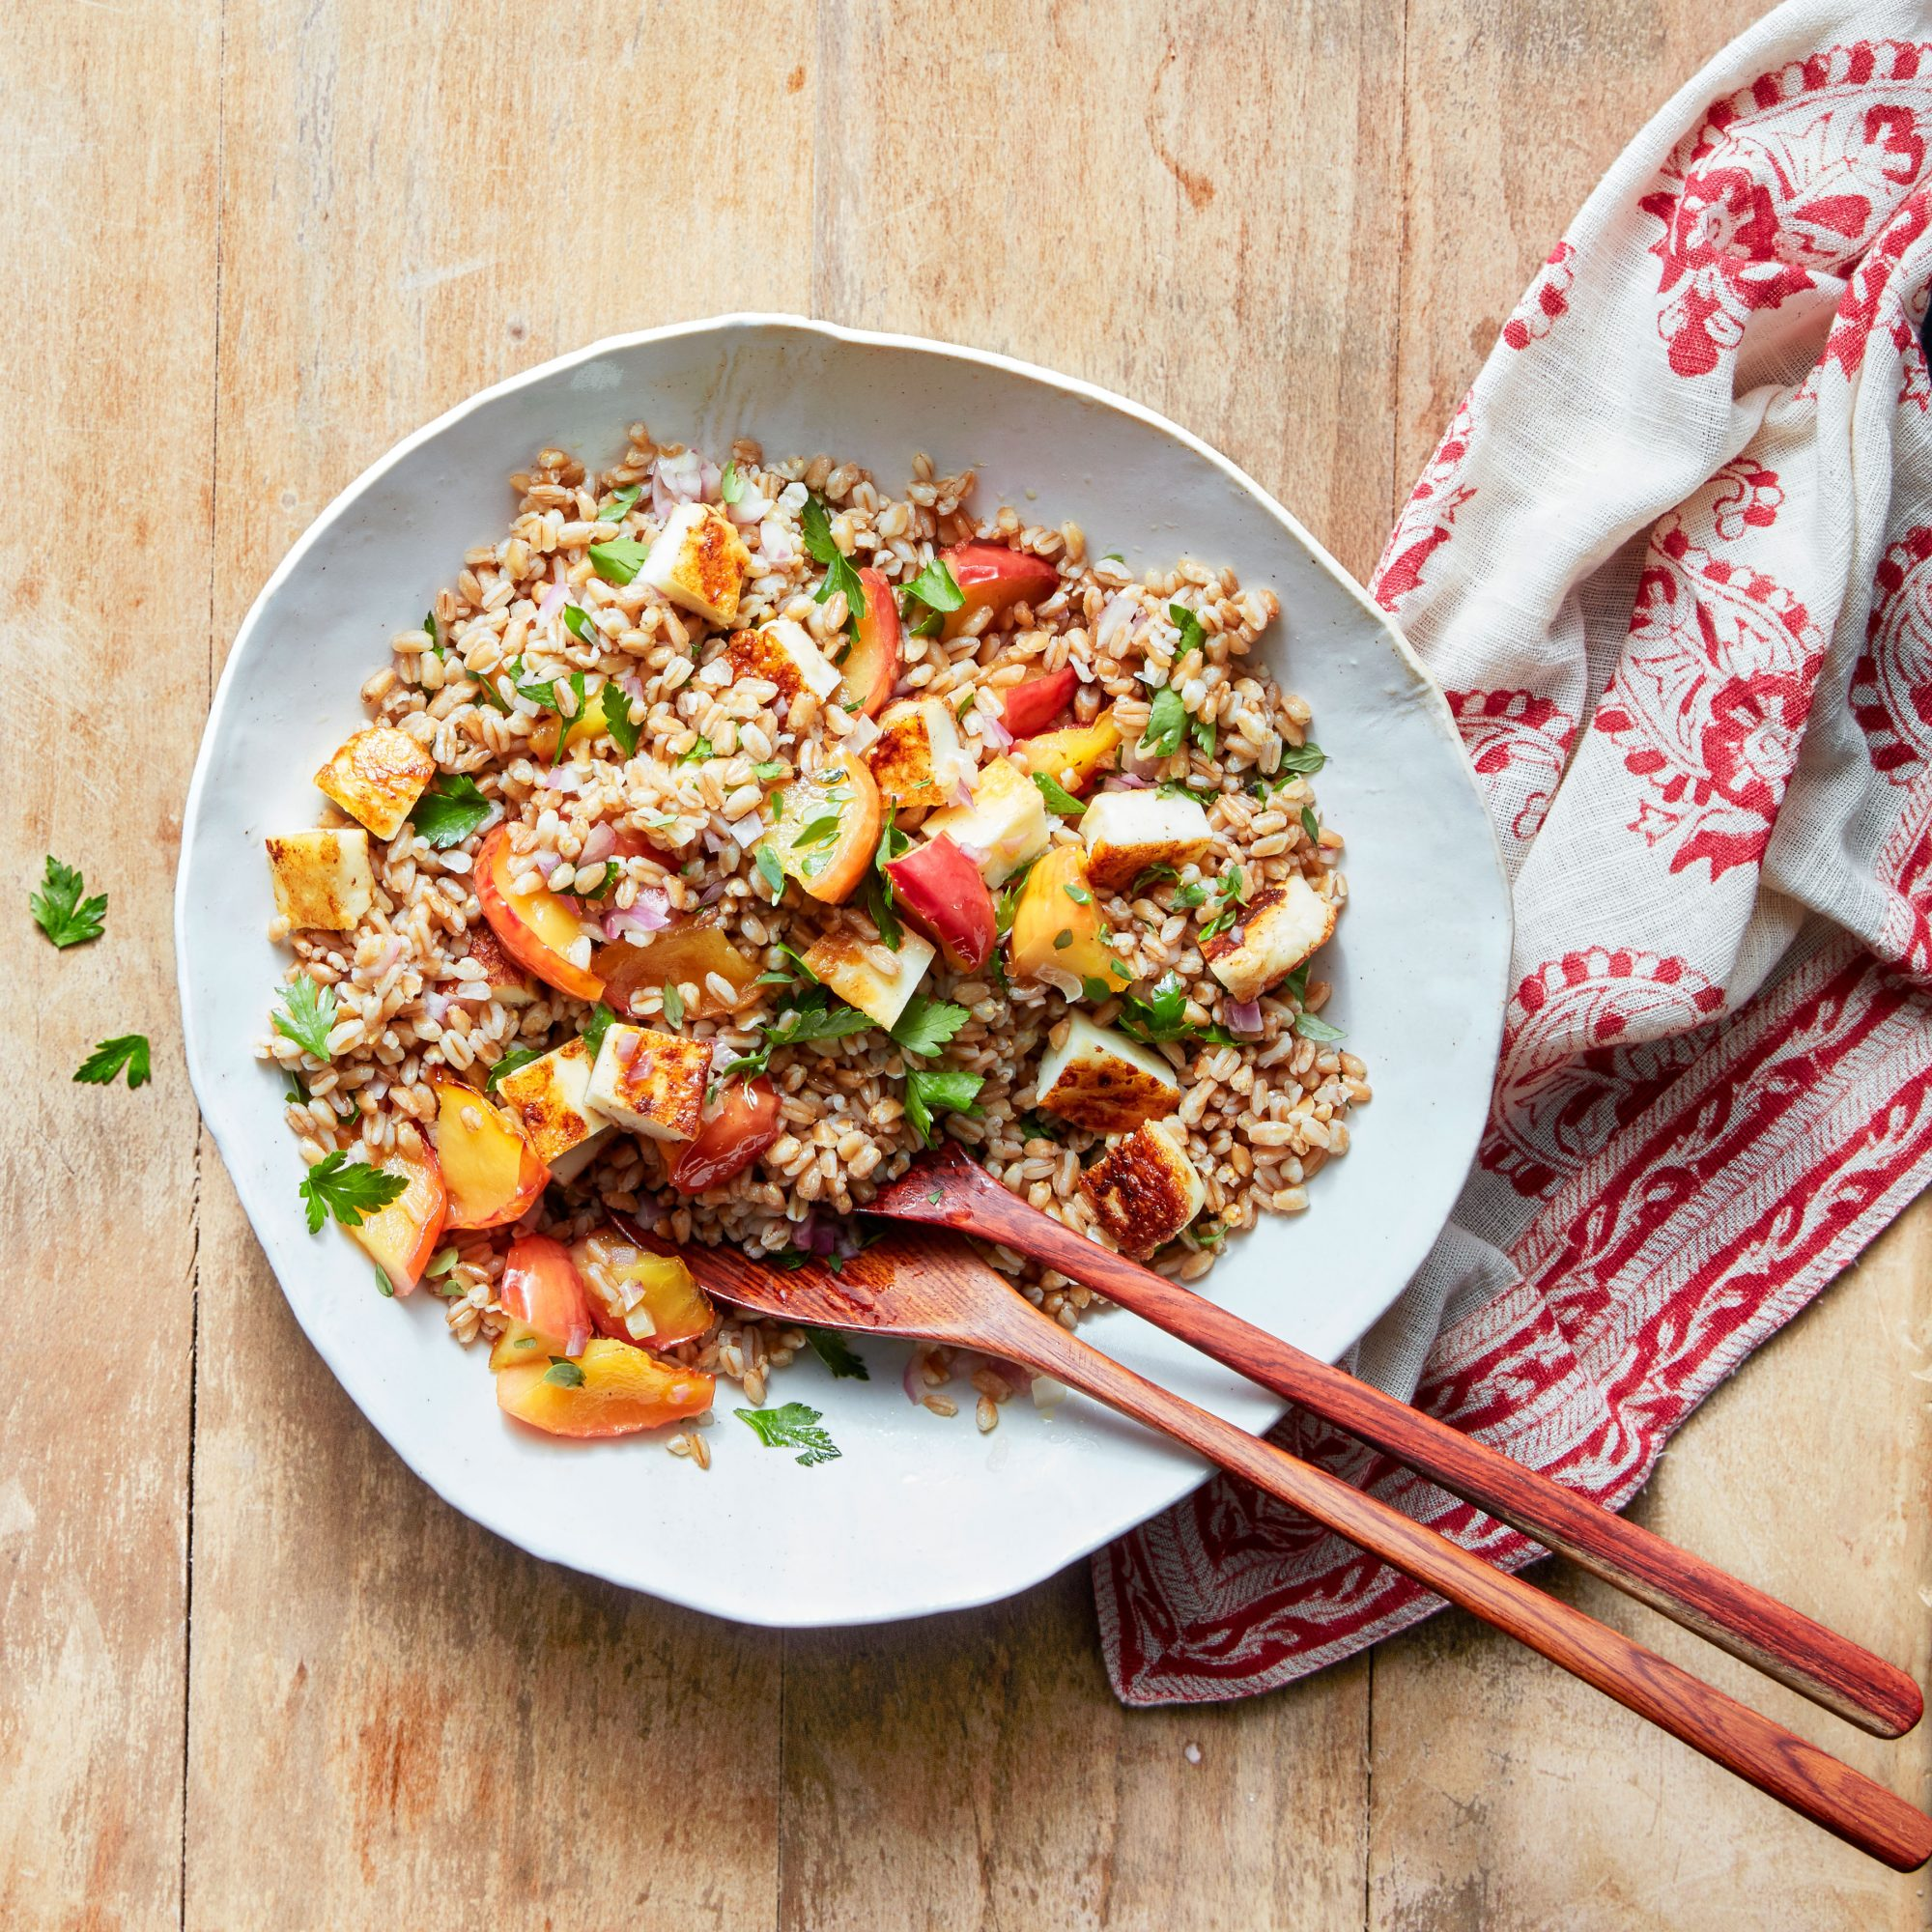 Farro Salad with Apples, Halloumi, and Herbs